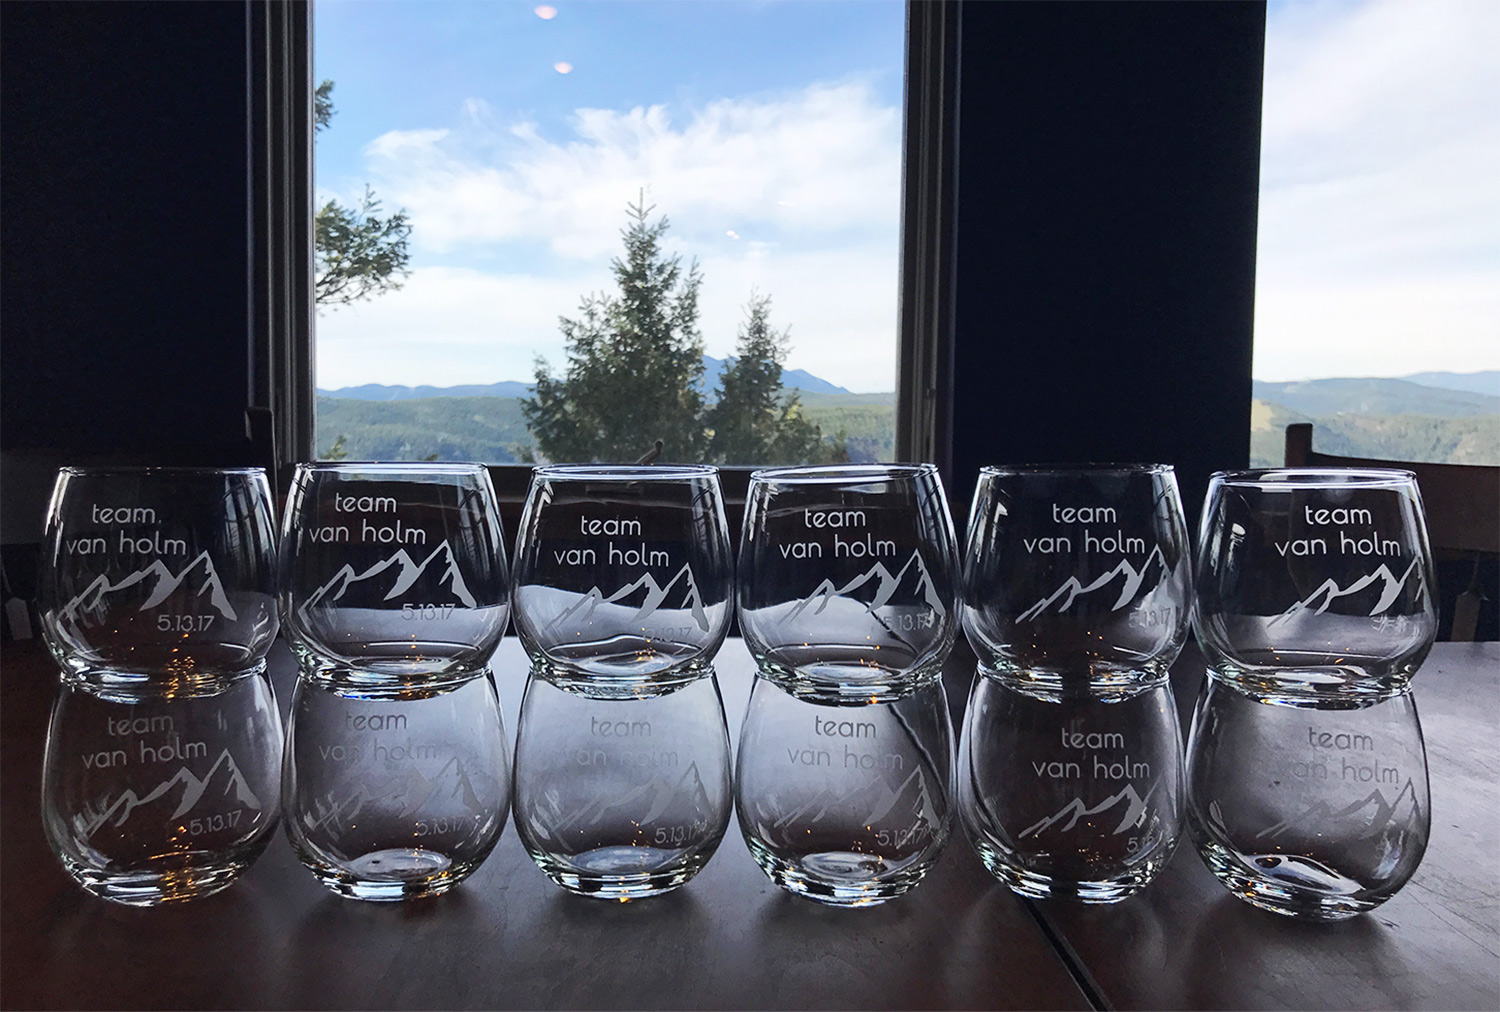 Custom Orders - Measured or not, we can custom etch glassware to take your special event to the next level. From weddings to personalized gifts, anything is possible. You can send us artwork or send us a note with what you're looking for and leave the design work to us. Fill out the form below to get started with a quote.